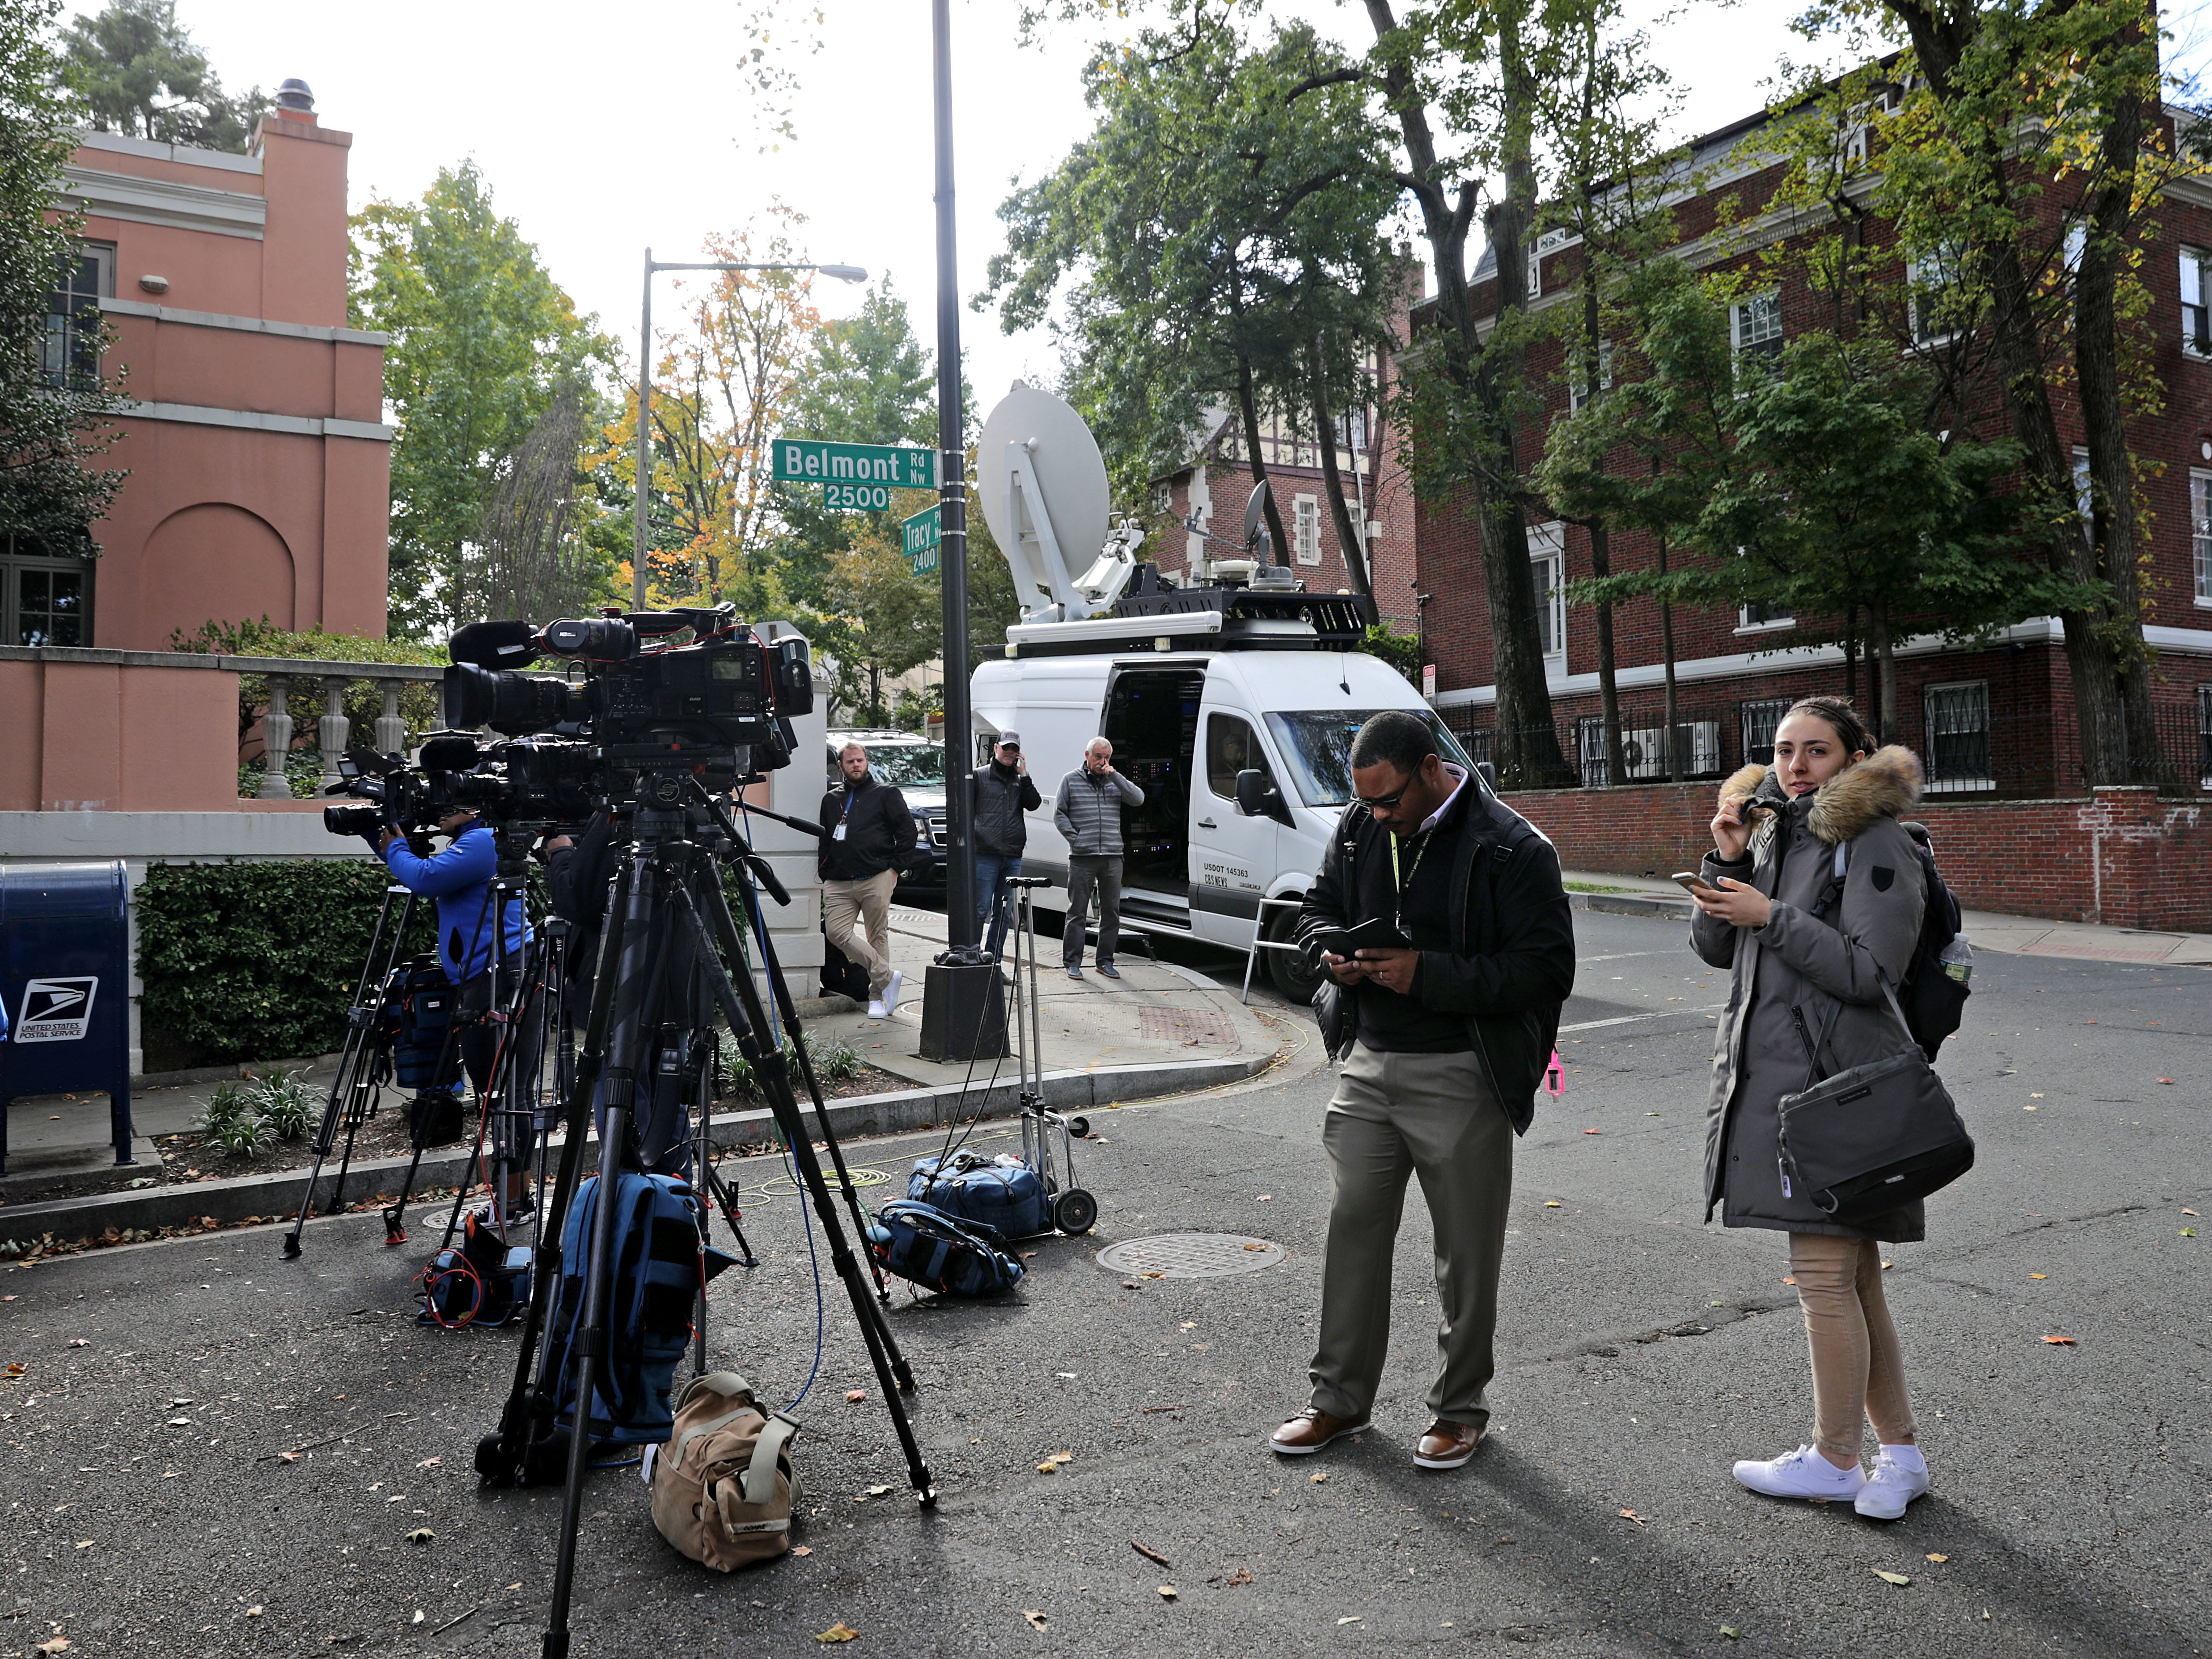 WASHINGTON, DC - OCTOBER 24: A row of television news cameras are set on tripods at the end of the block where former President Barack Obama and his family live and where an explosive device was sent to them October 24, 2018 in Washington, DC. The Secret Service said it intercepted the explosive device sent to the Obamas and a similar one that was also sent to former Secretary of State Hillary Clinton and her husband former President Bill Clinton. Another similar explosive device was sent to CNN's offices in New York as well as one sent to billionaire philanthropist George Soros on Monday. (Photo by Chip Somodevilla/Getty Images) ORG XMIT: 775247936 ORIG FILE ID: 1058829680